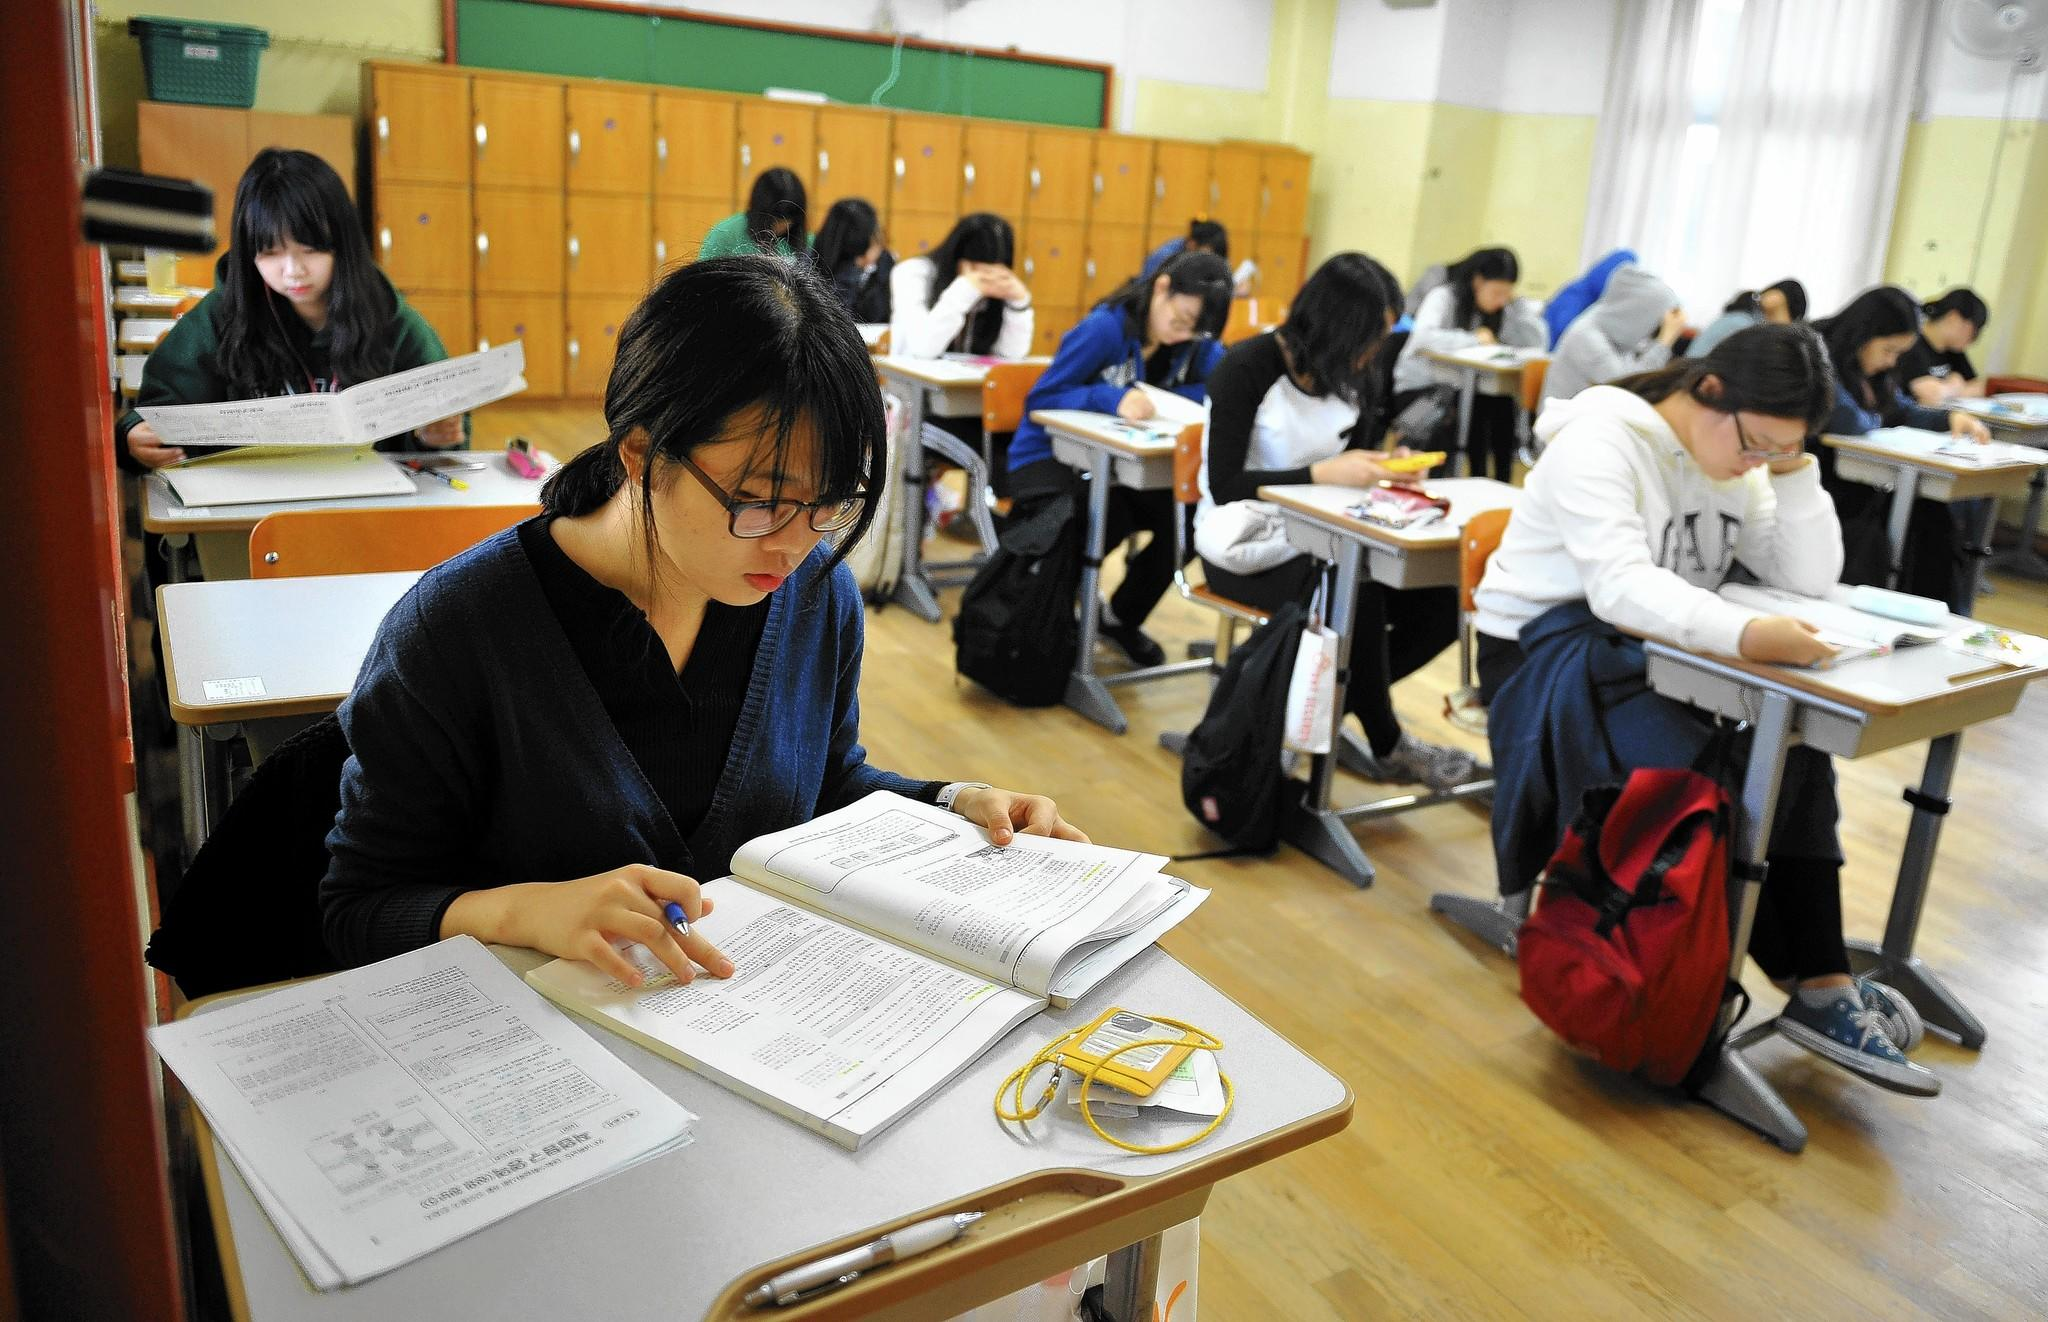 South Korean students rank high in academic ability. Some experts attribute their achievement levels to Korean parents pushing their children to get better and work harder.